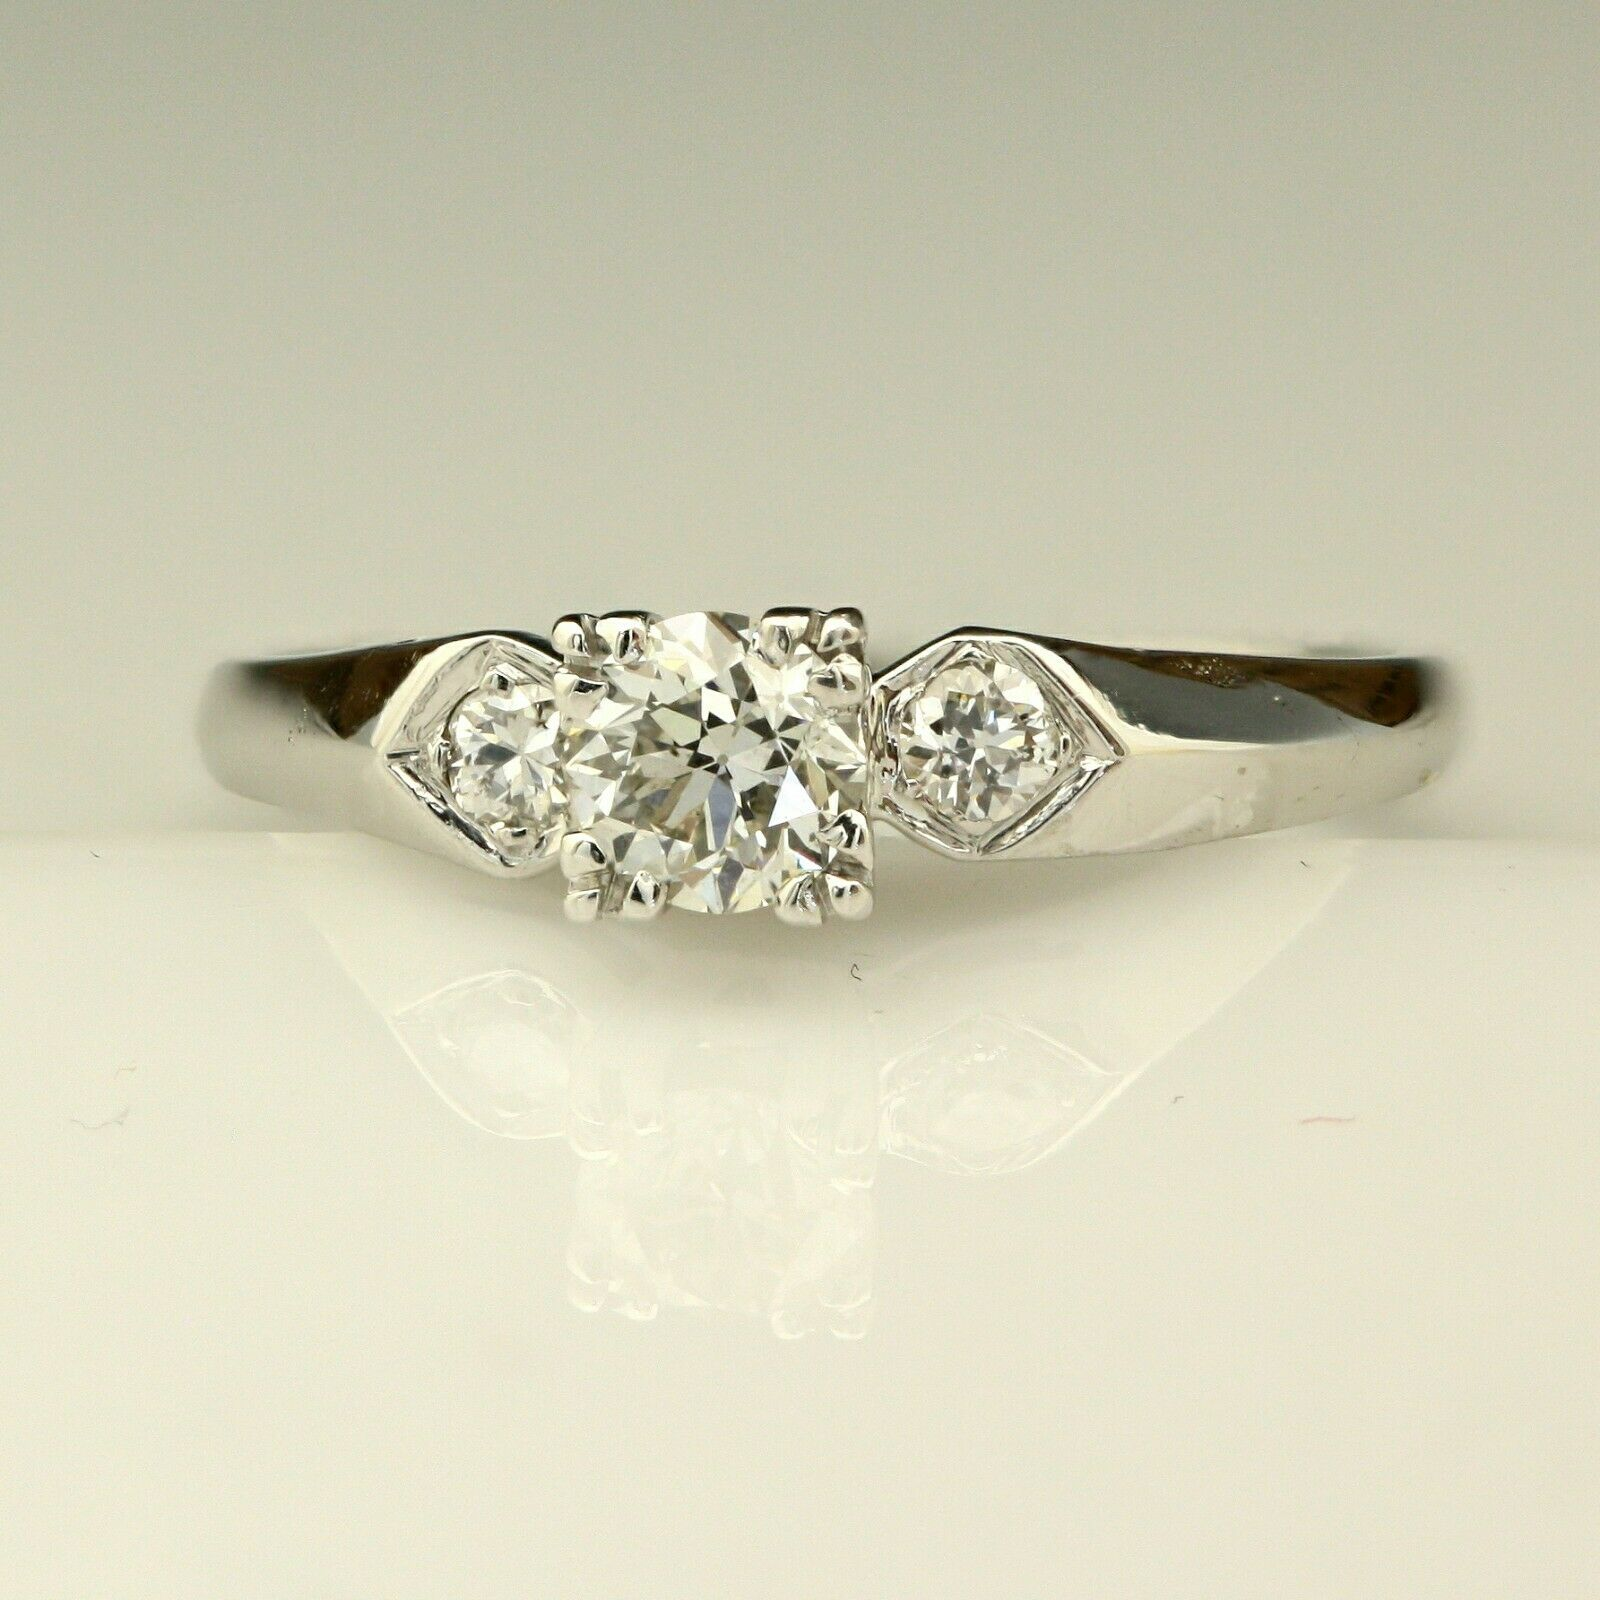 Mid Century 1 2ct Diamond Old European Platinum Engagement Ring 4.3g Size 9